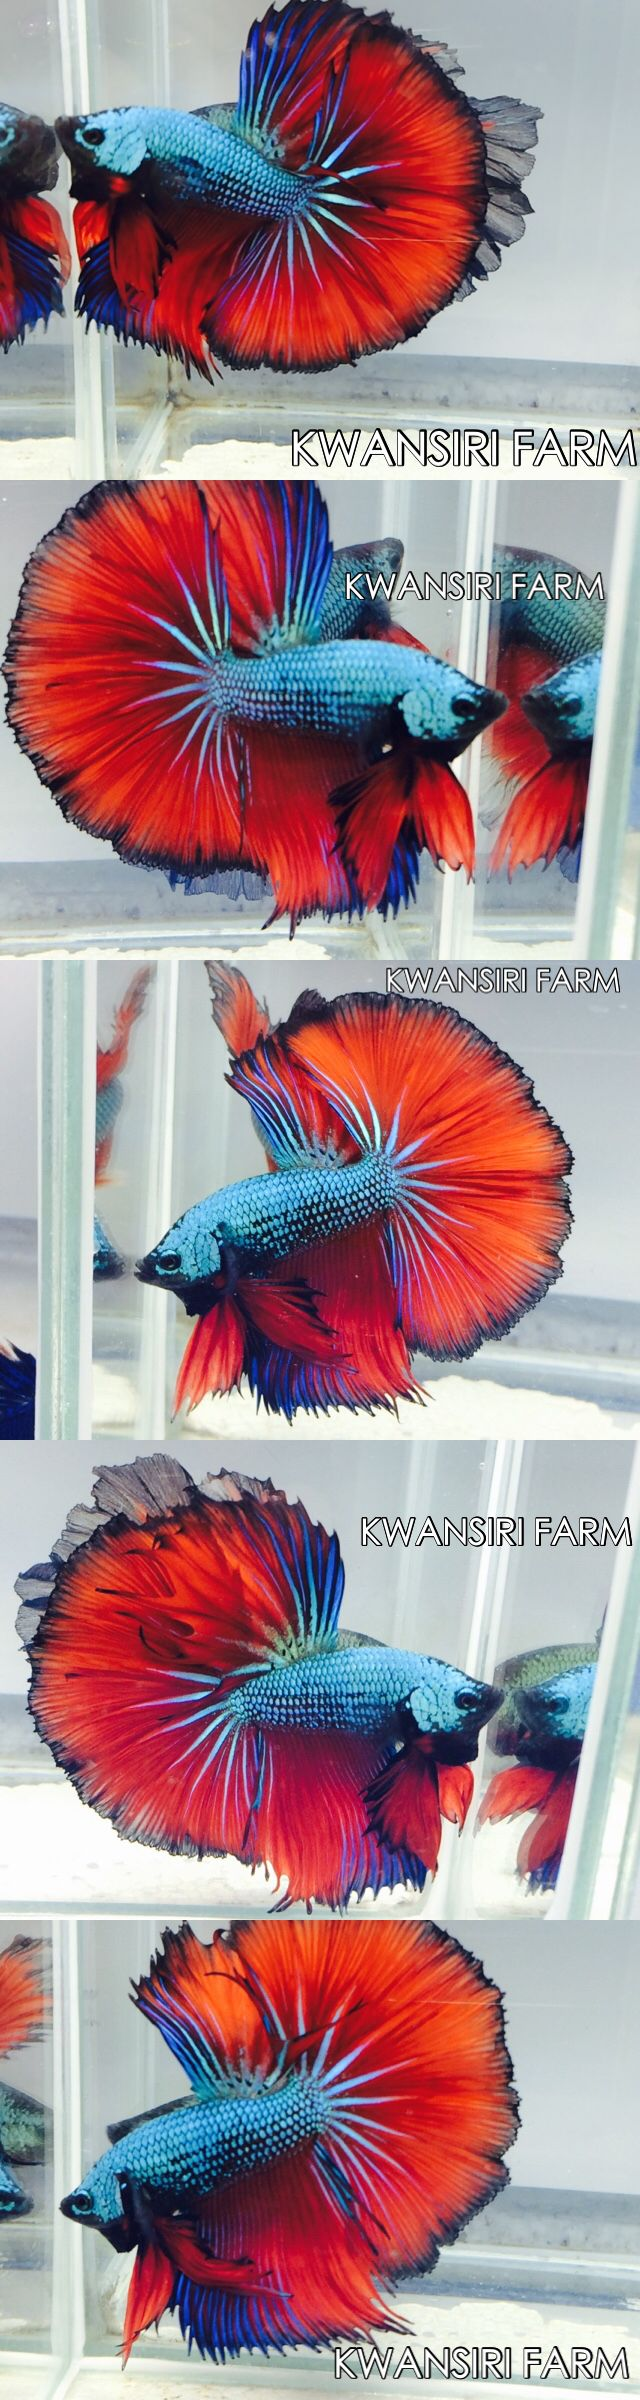 49 best Betta Dreams images on Pinterest | Fish aquariums, Betta and ...